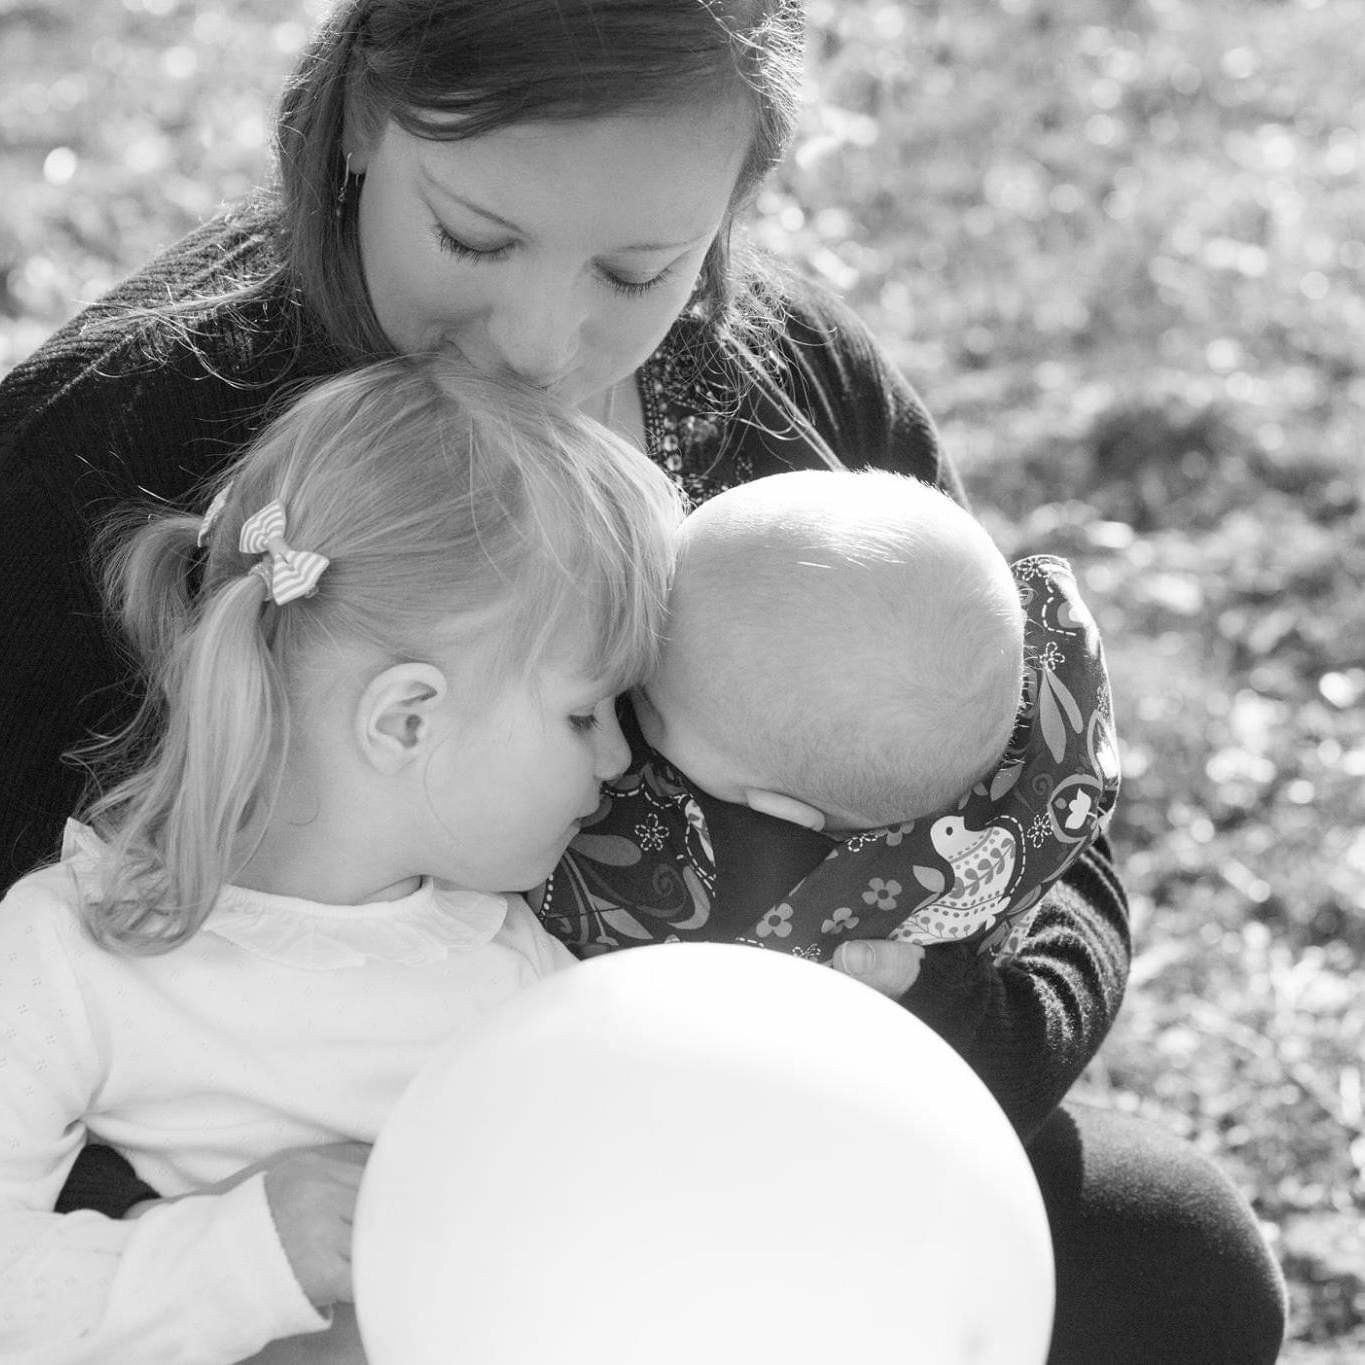 'I Was Diagnosed With Breast Cancer While Pregnant – And Went Into Chemo At